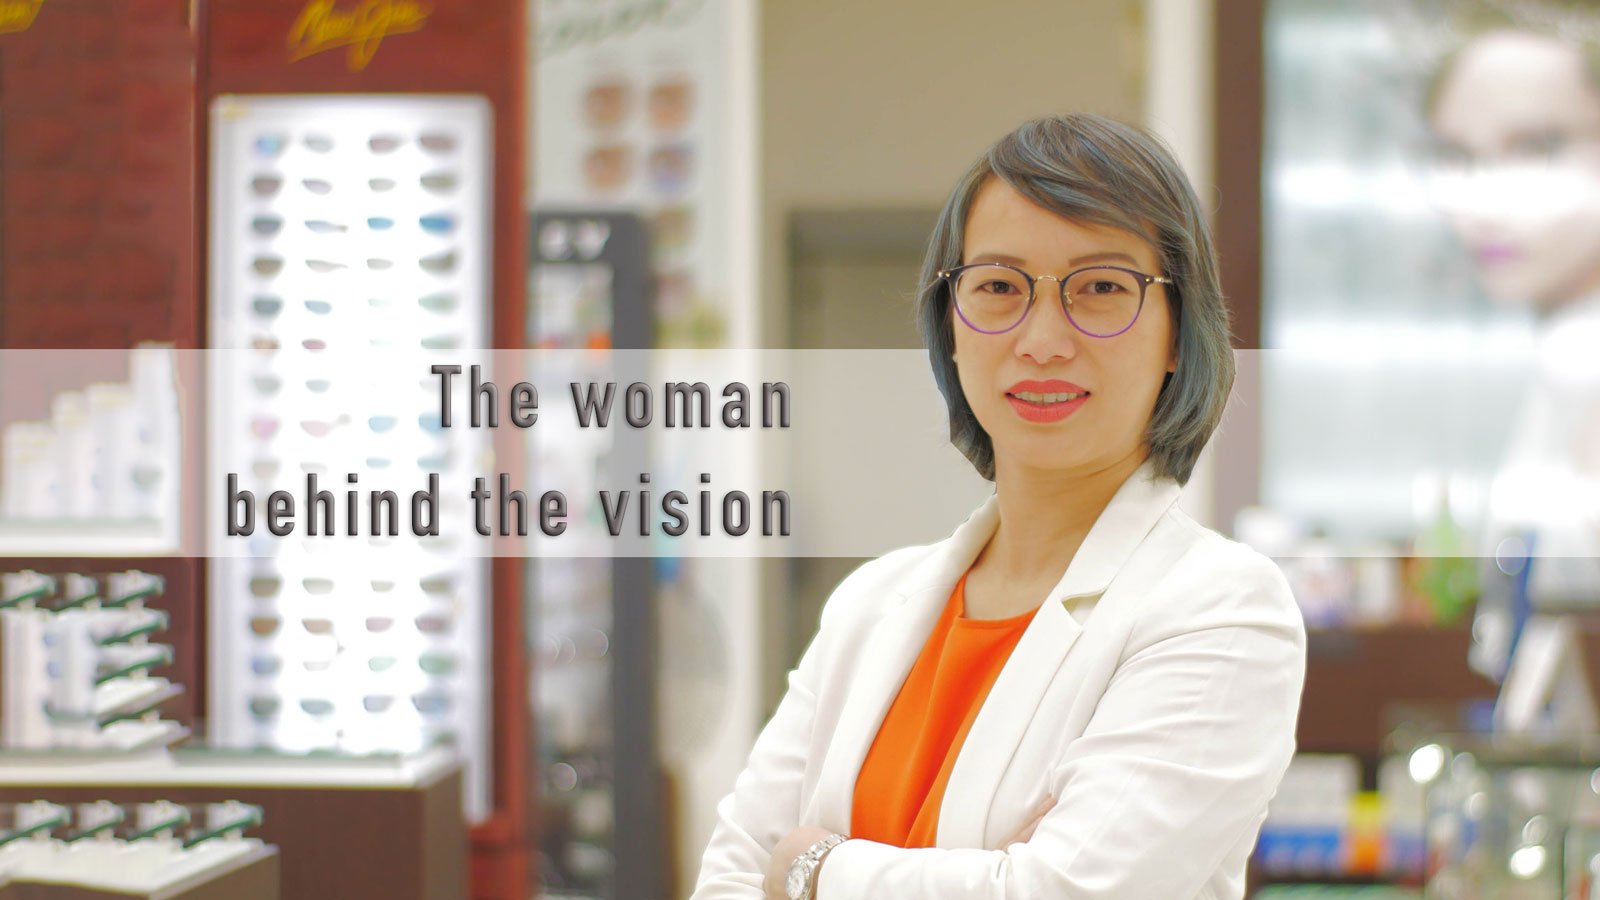 The woman behind the vision